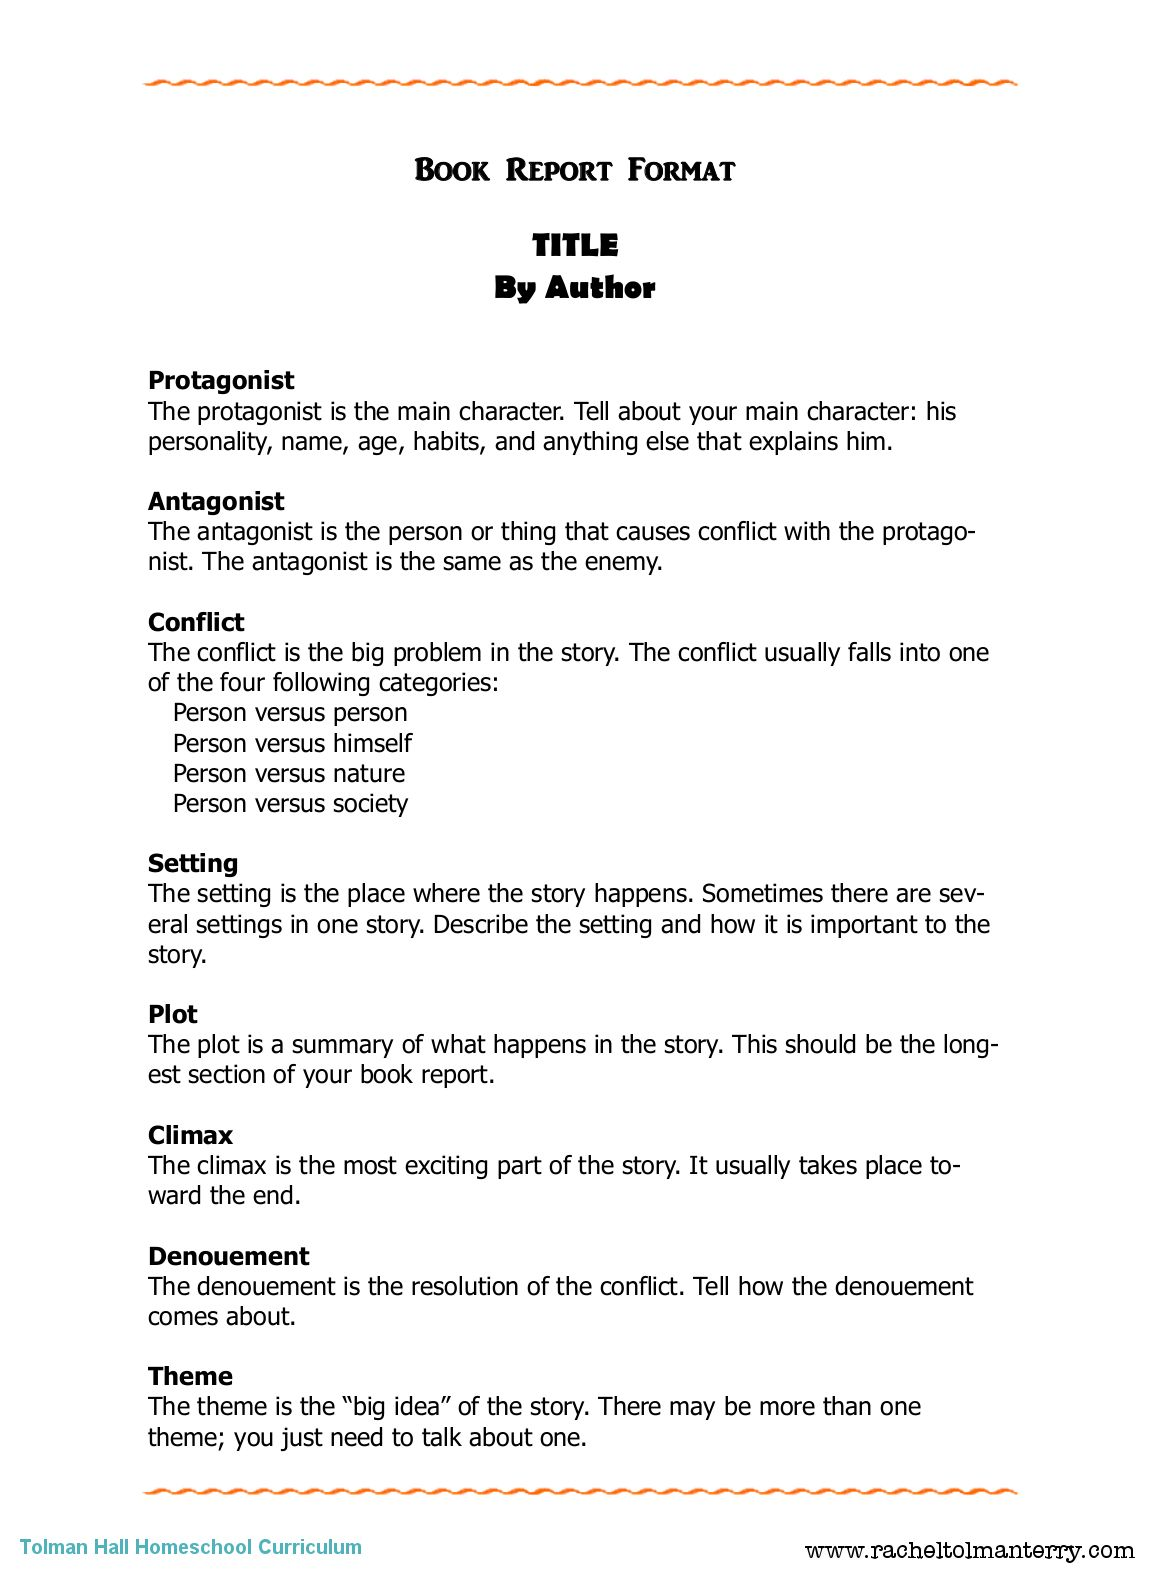 Book Report Format Can Be Used For Personal Or Assigned With